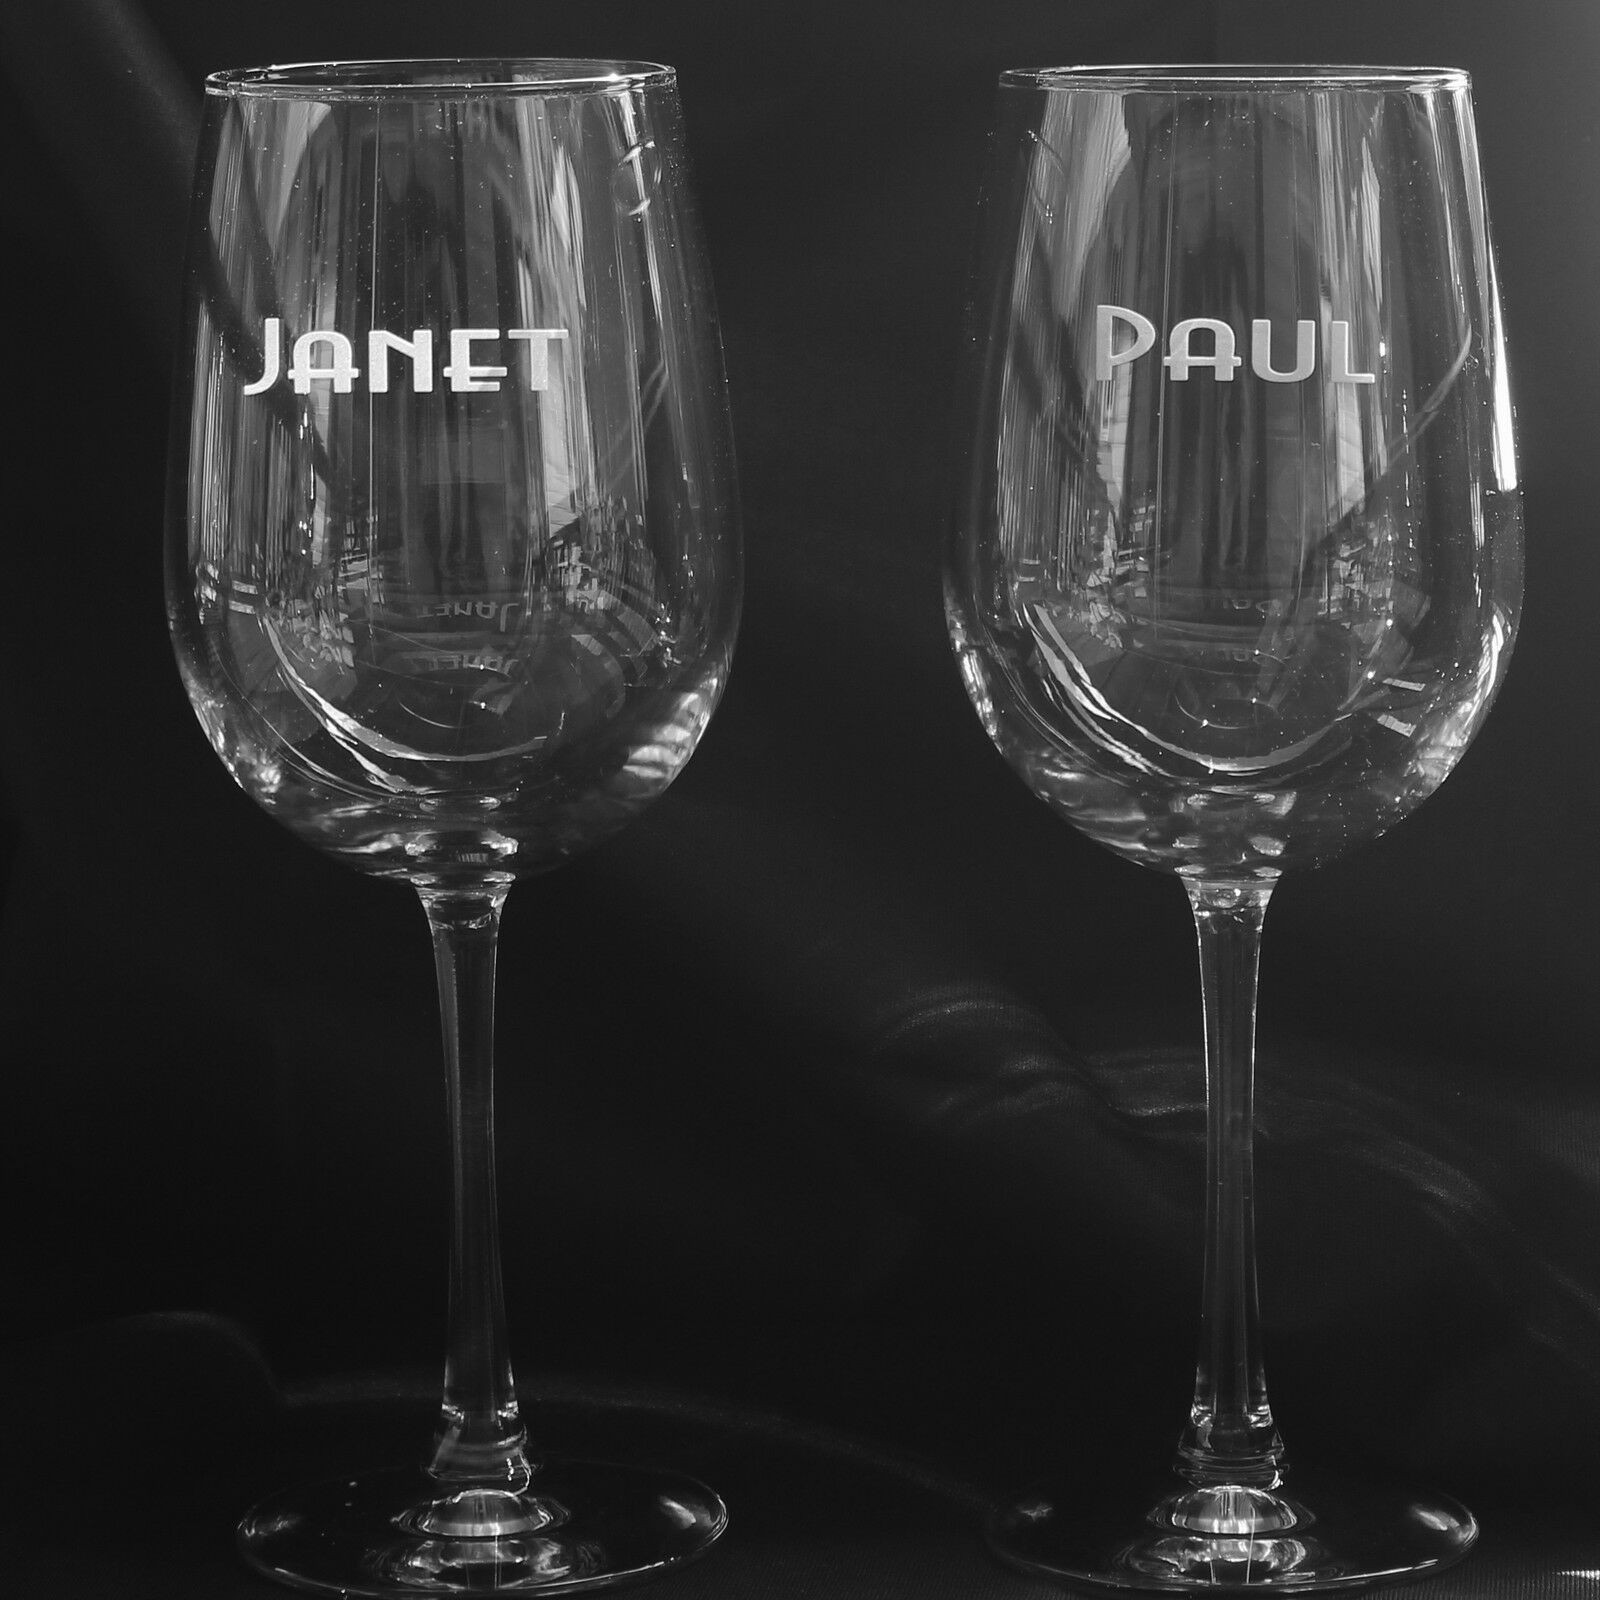 2 PERSONALIZED  WINE GLASSES YOUR NAME 18.5 OZ EACH SAND CARVED